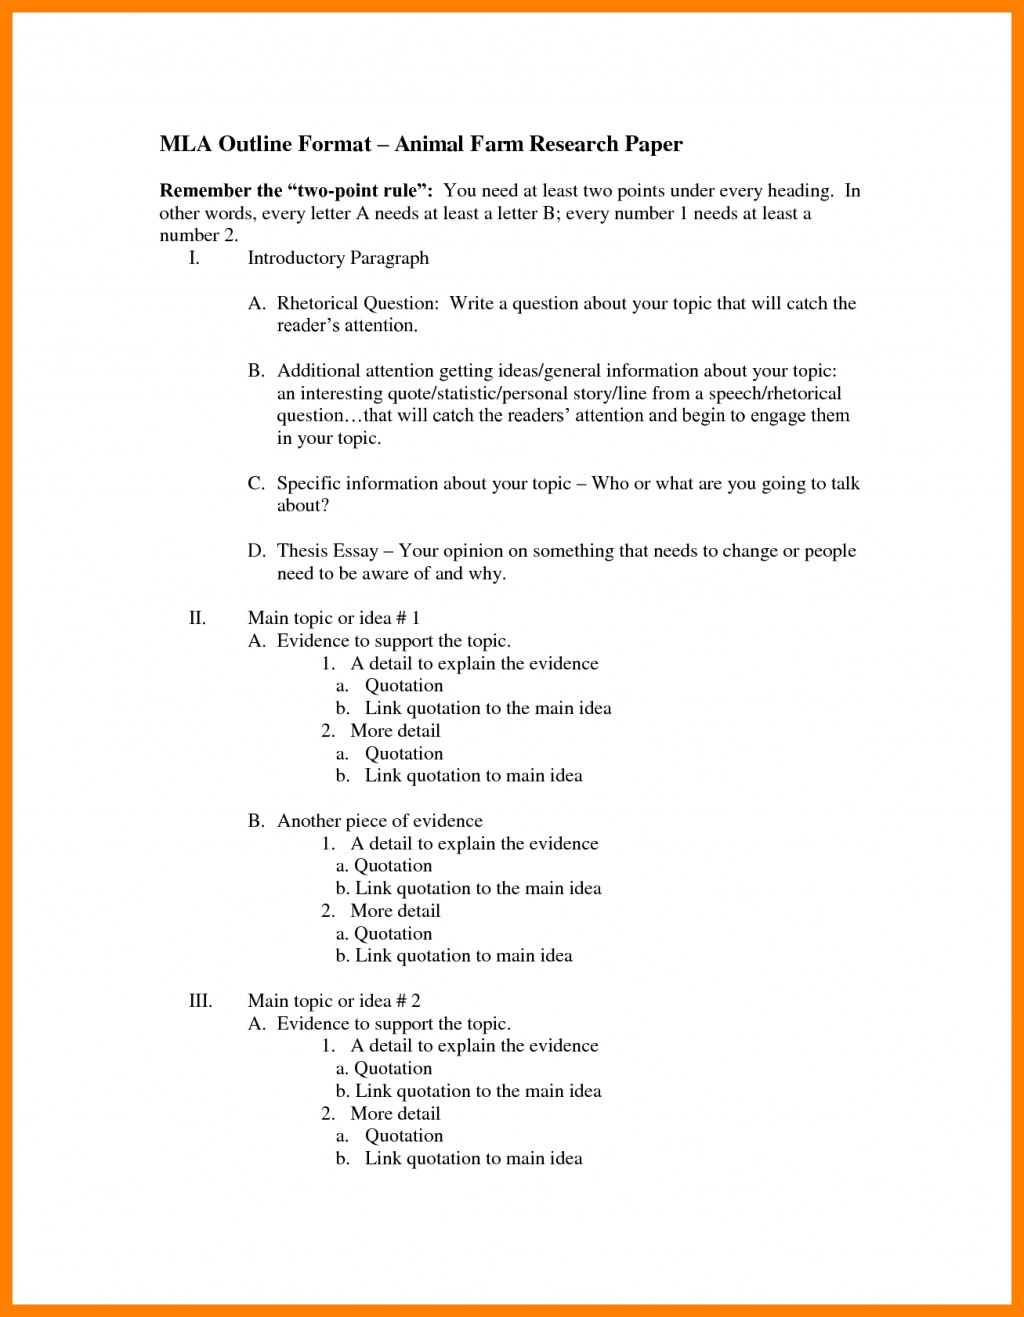 001 Research Paper Example Of Outline Mla Format Bunch Ideas Wonderful A Large